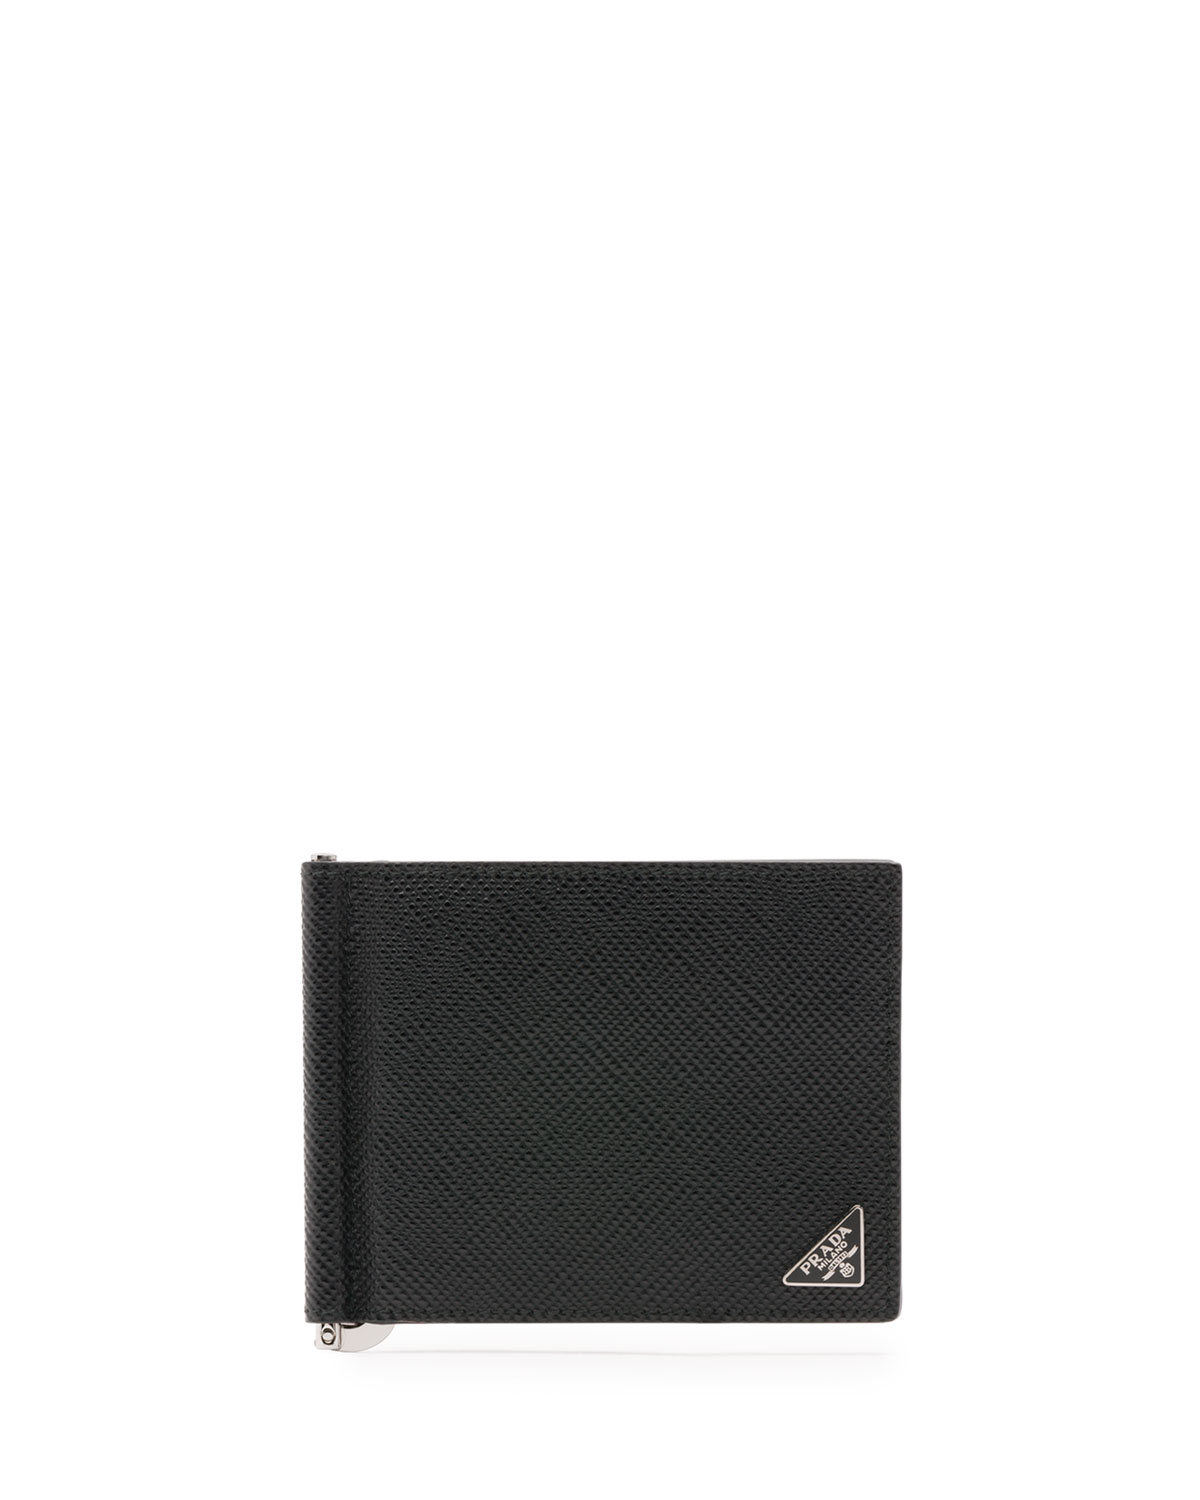 Prada Black Saffiano Leather Money Clip Wallet - Best Photo Wallet ... 0fdf63425fa45